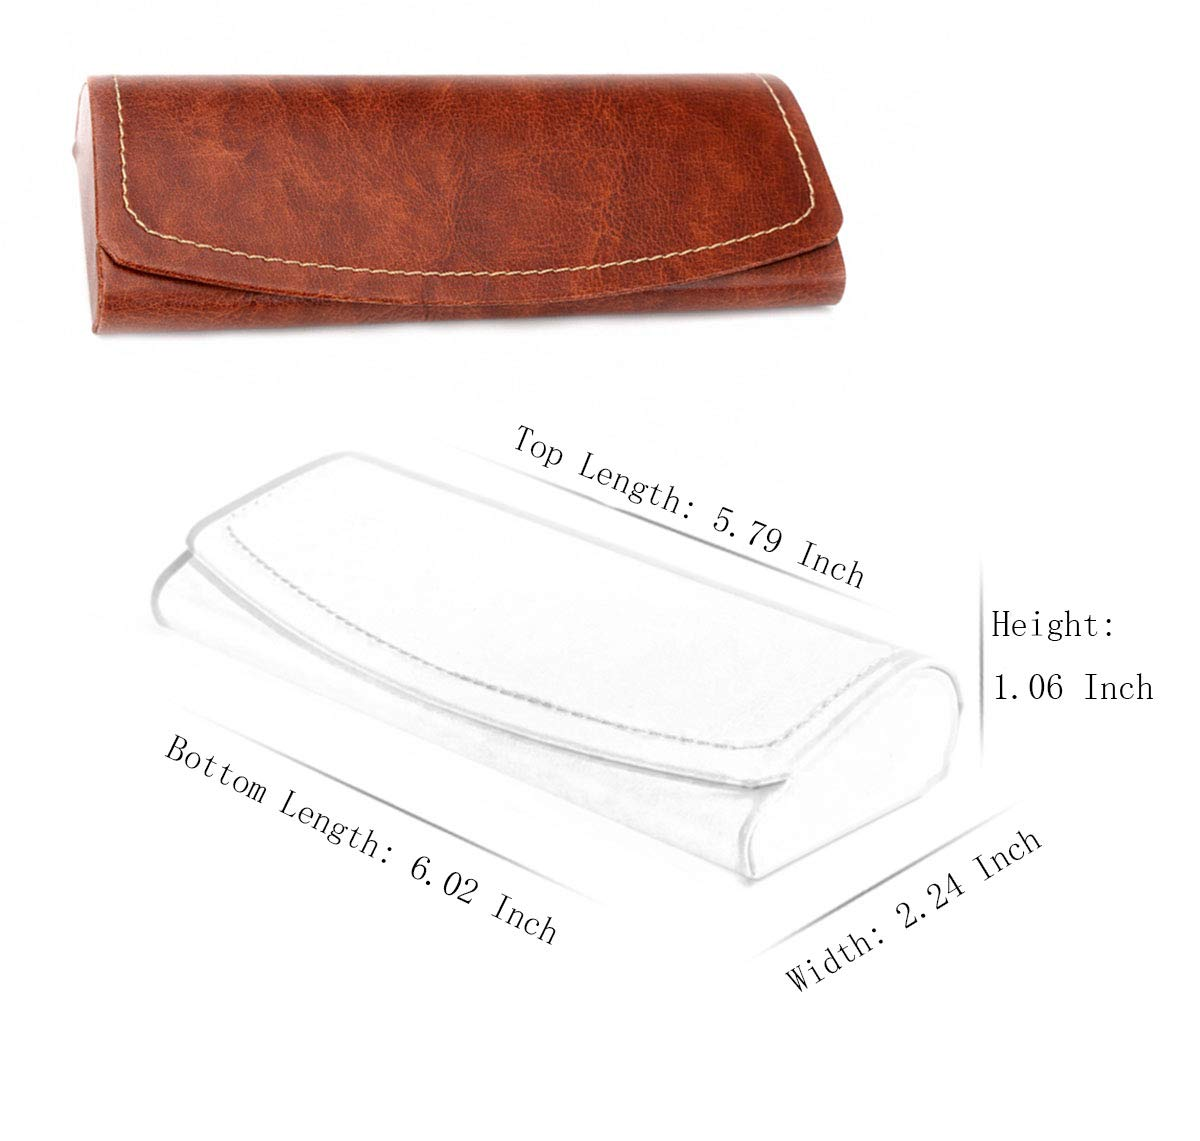 PU Leather Hard Shell Eyeglass Case Portable Sunglasses Glasses Holder Pouch (Brown) by Bauson (Image #7)